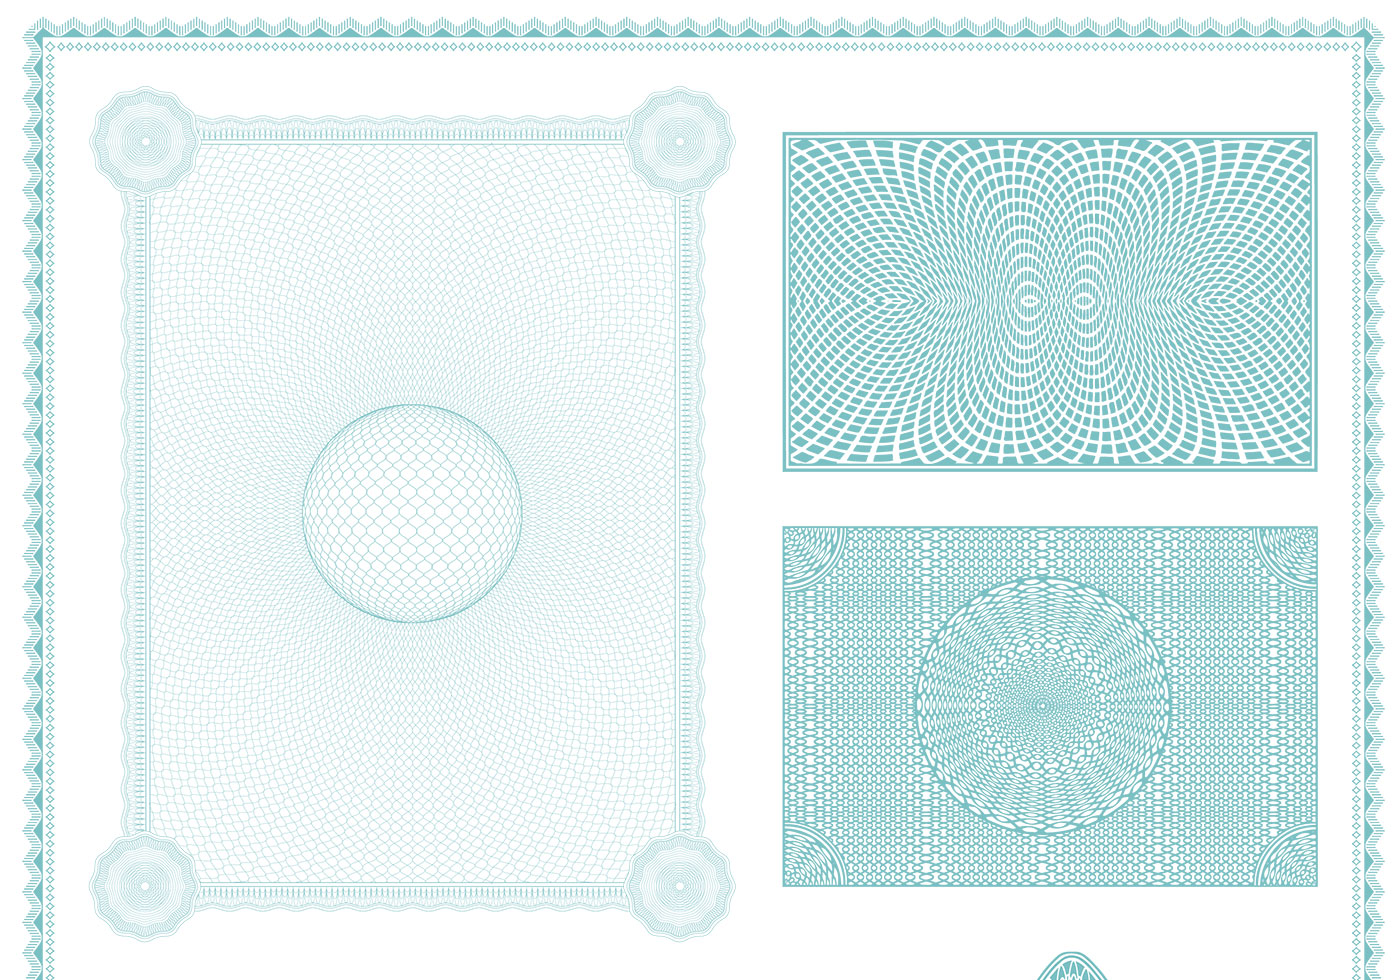 Certificate Backgrounds Vector Pack - Download Free ...